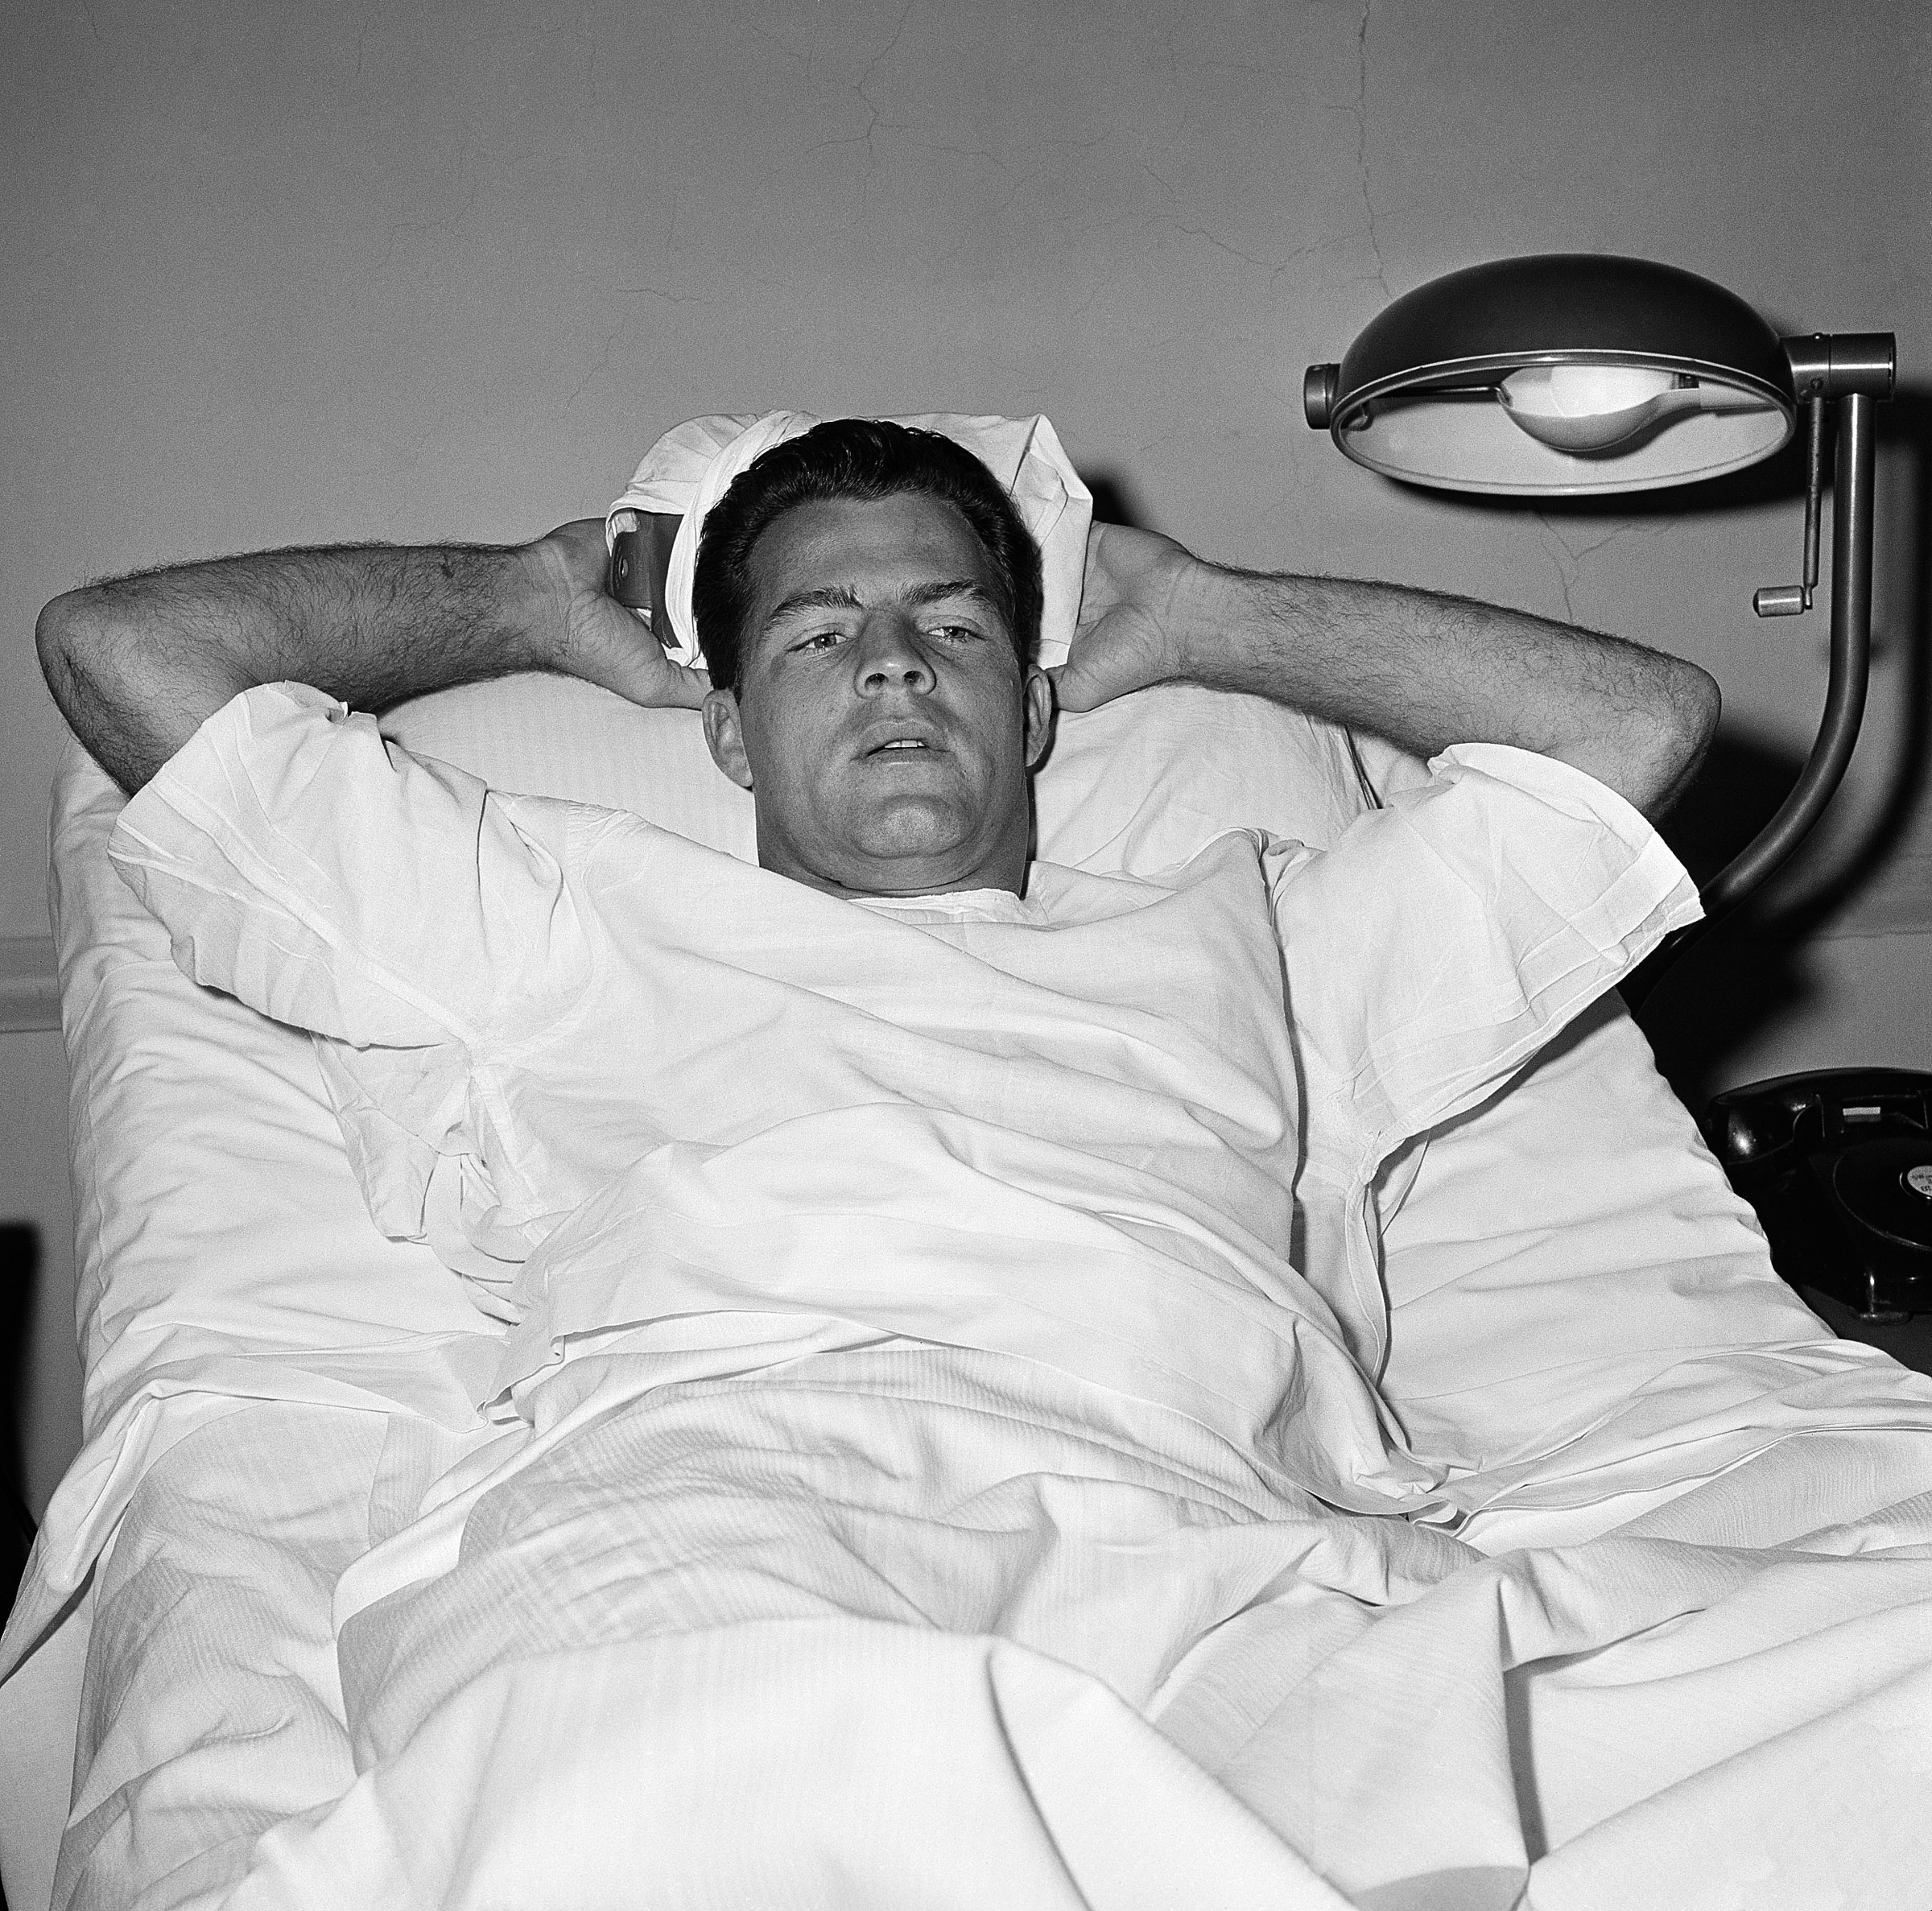 """In this Nov. 22, 1960, file photo, New York Giants football player Frank Gifford lies in a bed holding an ice pack on his head at St. Elizabeth's Hospital in New York. Gifford sustained a consussion in a game on Nov. 20, 1960. The family of Pro Football Hall of Famer Frank Gifford says signs of the degenerative disease chronic traumatic encephalopathy were found in his brain after his death. In a statement released through NBC News on Wednesday, Nov. 25, 2015, the family says Gifford suffered from unspecified """"cognitive and behavioral symptoms"""" in his later years. He died suddenly of natural causes at his Connecticut home in August at age 84. (AP Photo/File)"""